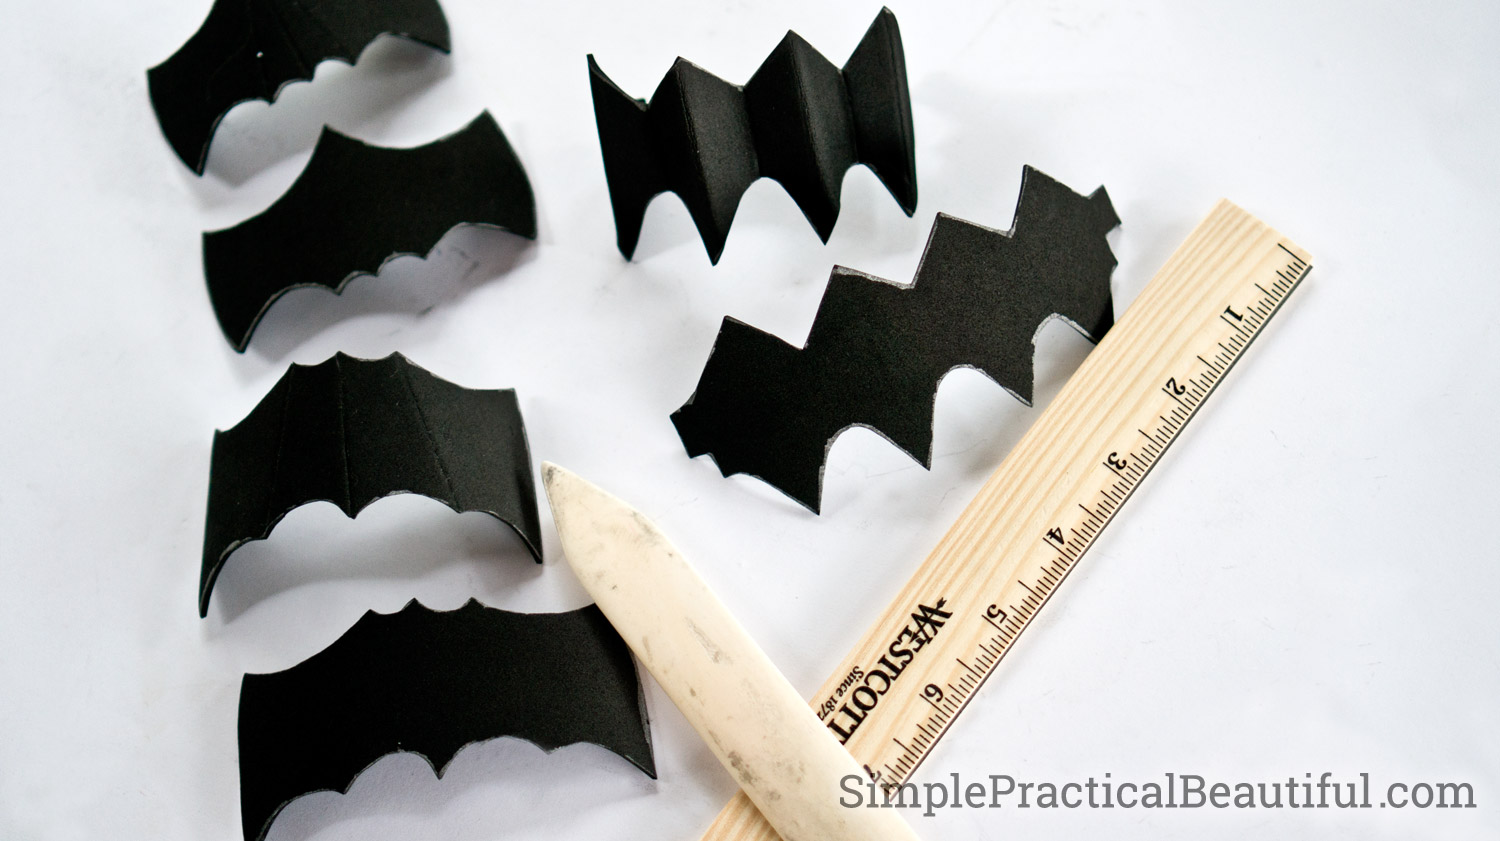 Free template or pattern parts for foam gauntlets